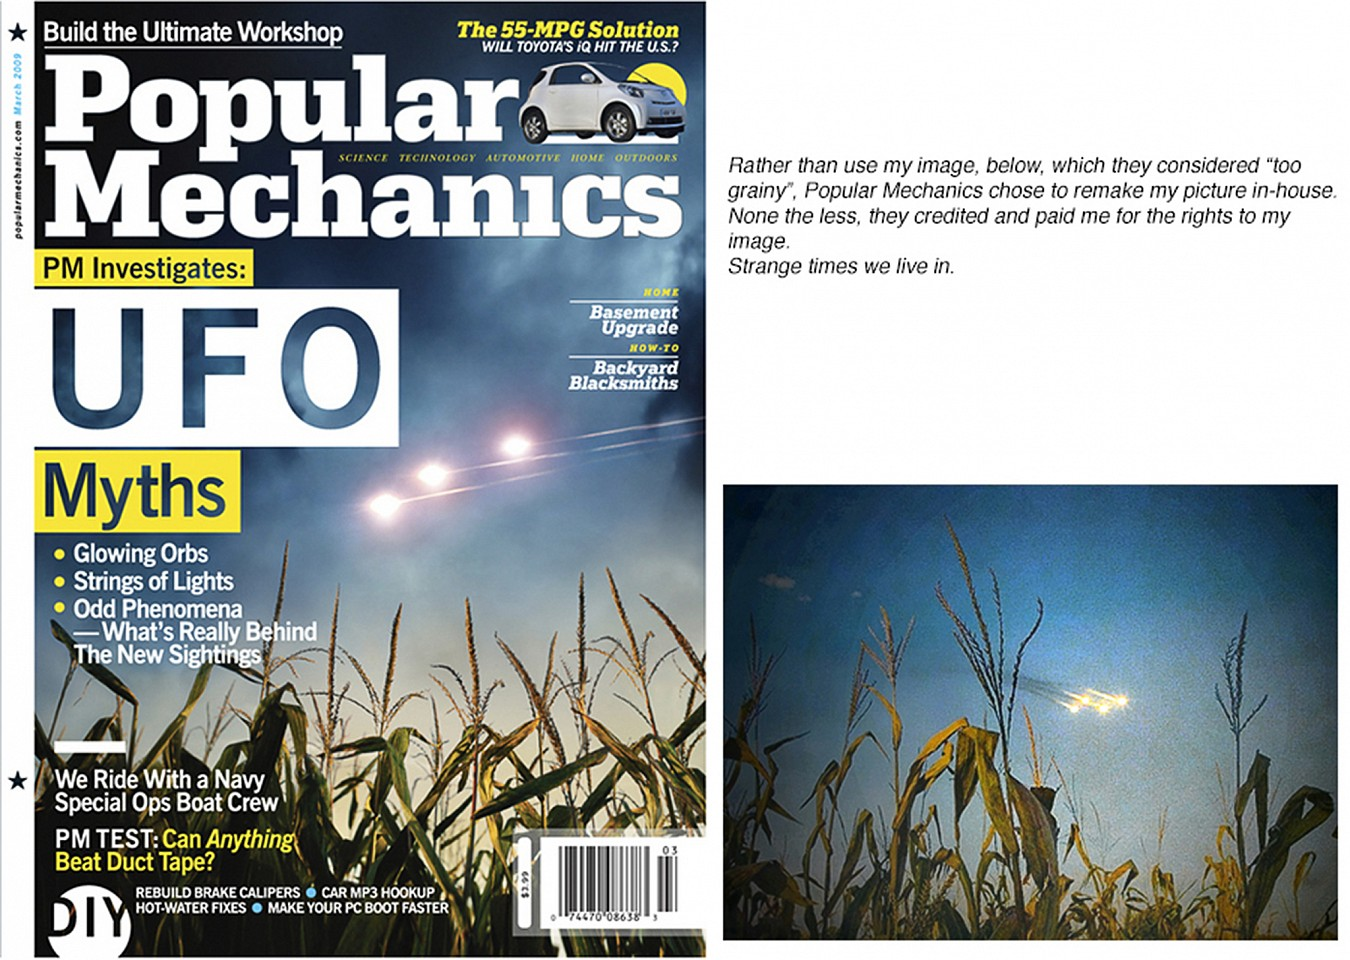 Oliver Wasow, Popular Mechanics 2009 March, Commercial publication